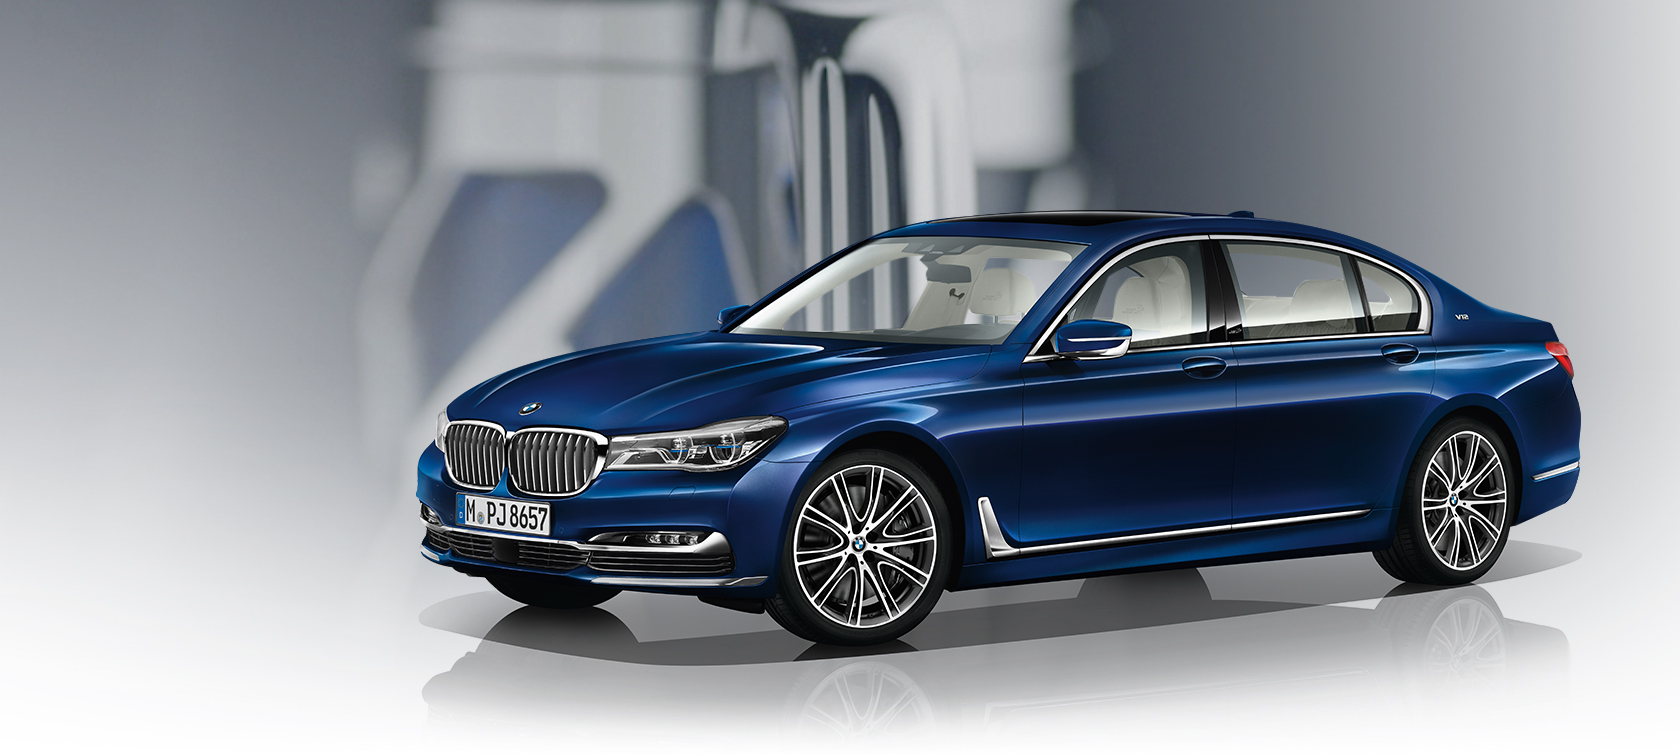 Bmw The Next 100 Years Bmw 7 Series Jubilee Edition